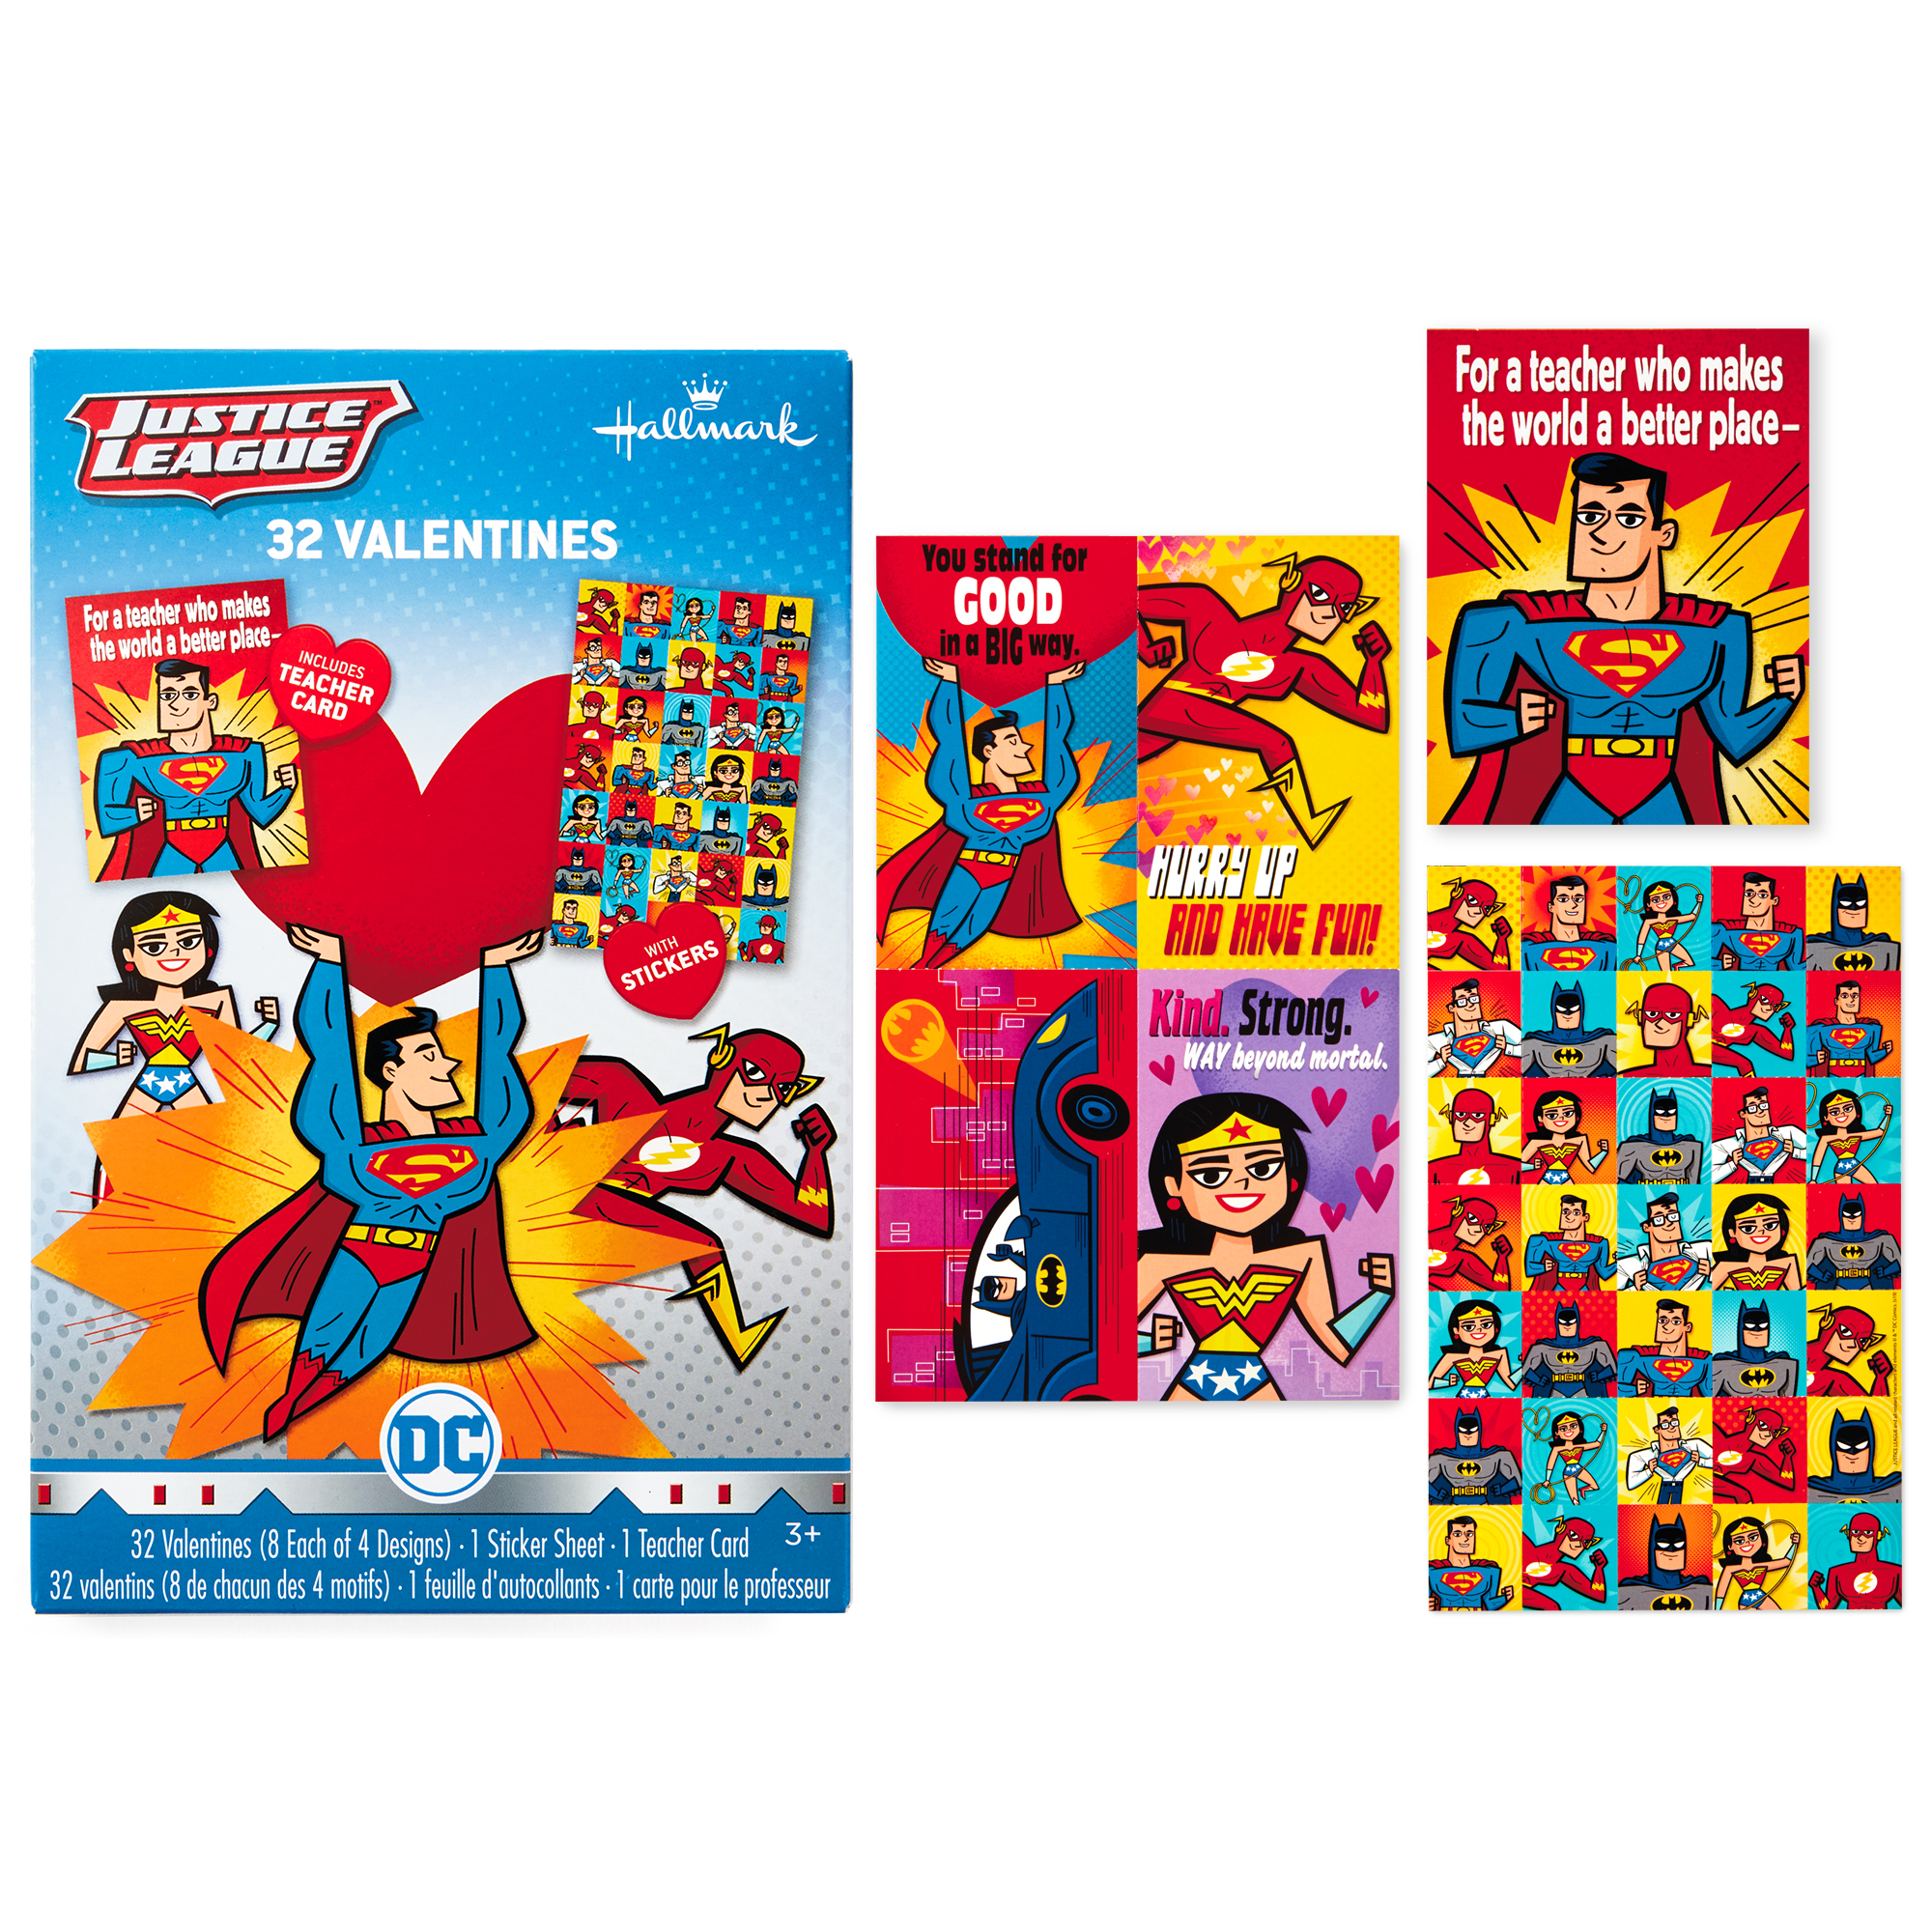 Hallmark Justice League Valentine's Day Cards (32 Cards, 35 Stickers, 1 Teacher Card)